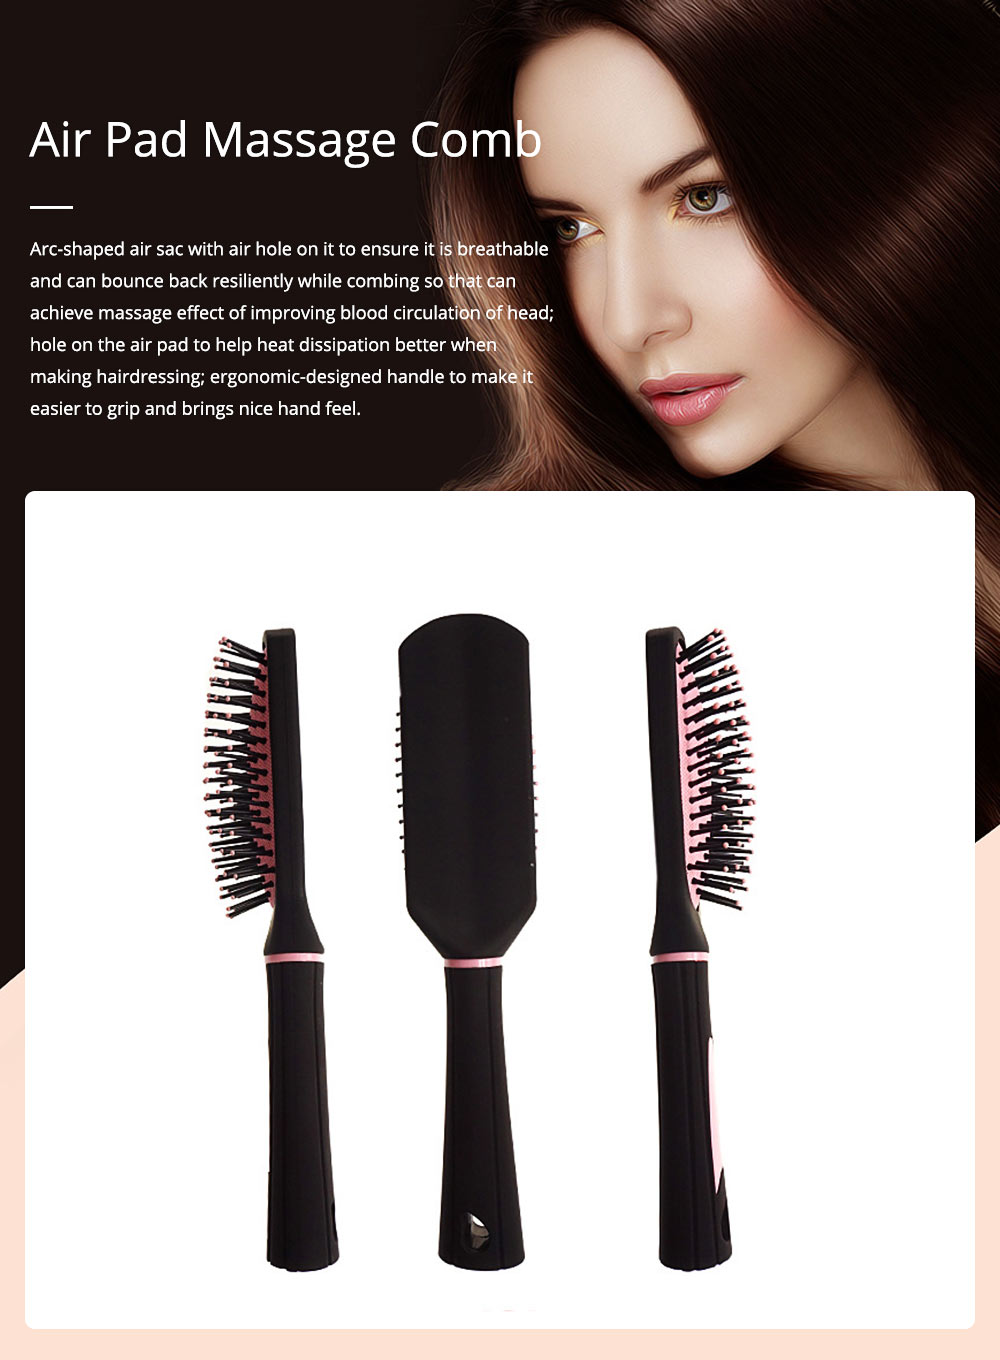 Air Pad Massage Comb Dull Polished Black Massage Comb Plastic Comb Square Hairdressing Massage Comb Hairdressing Tools 0